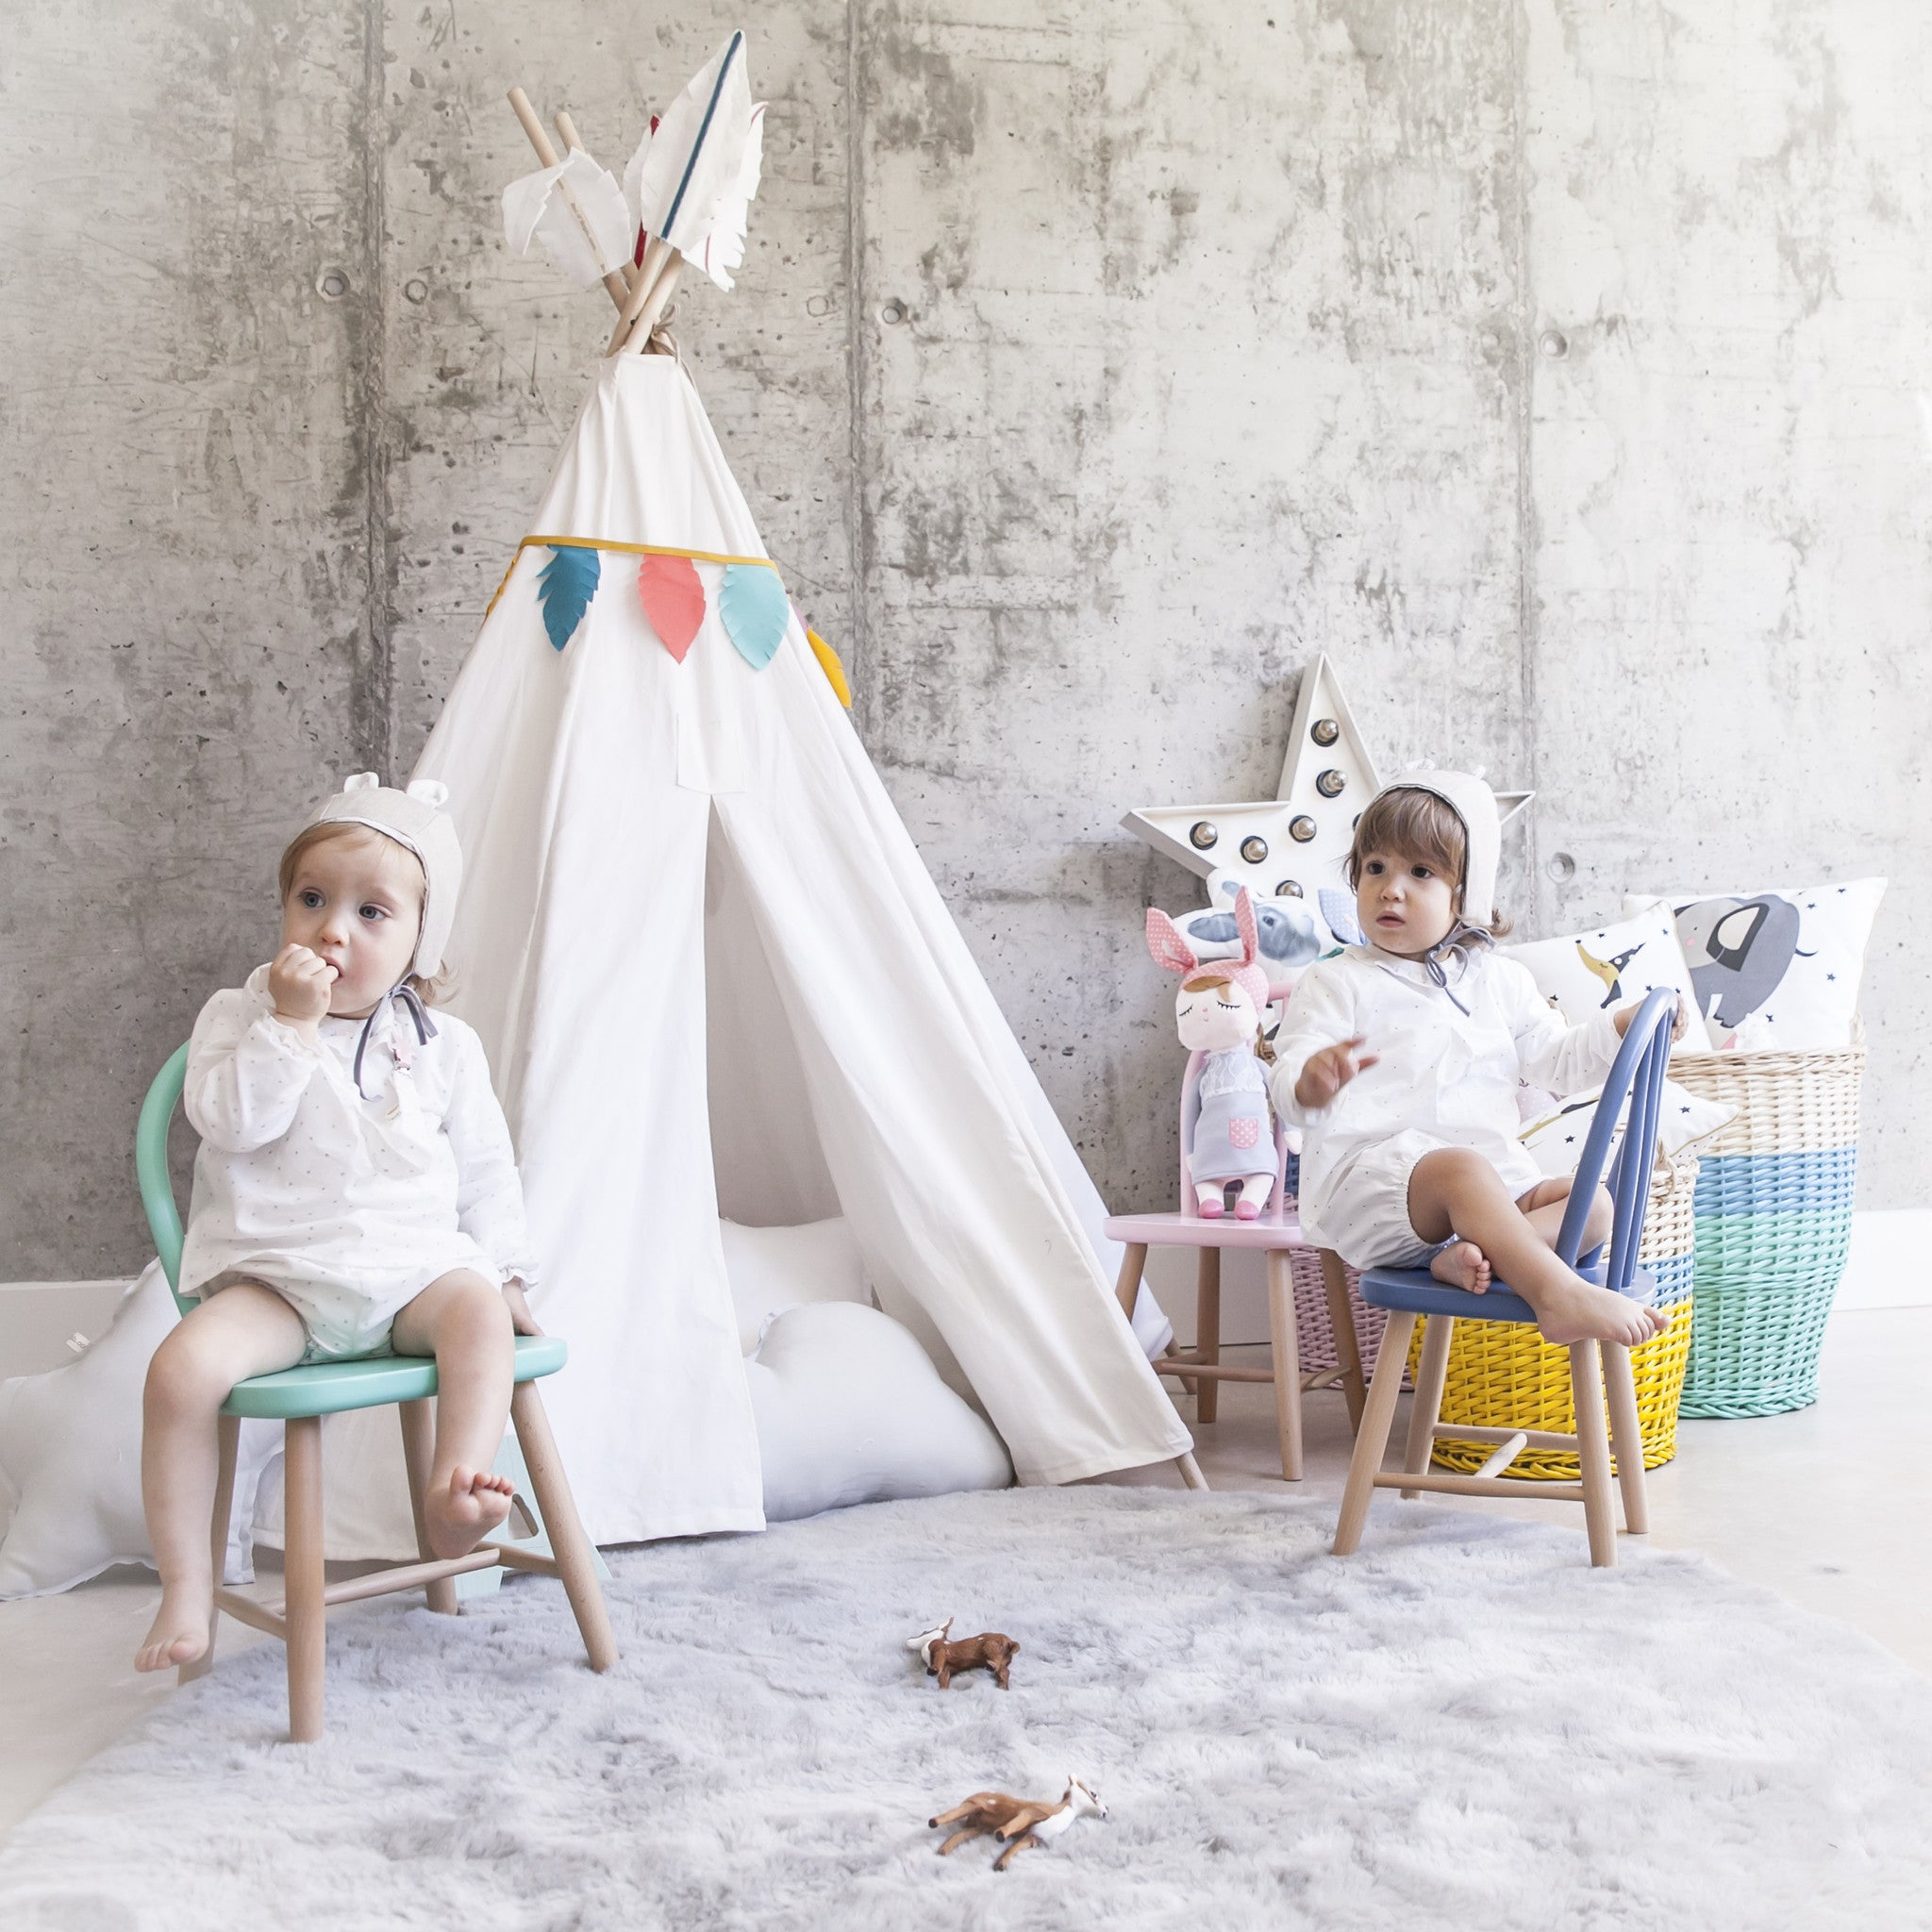 Tipi decorado con plumas de colores